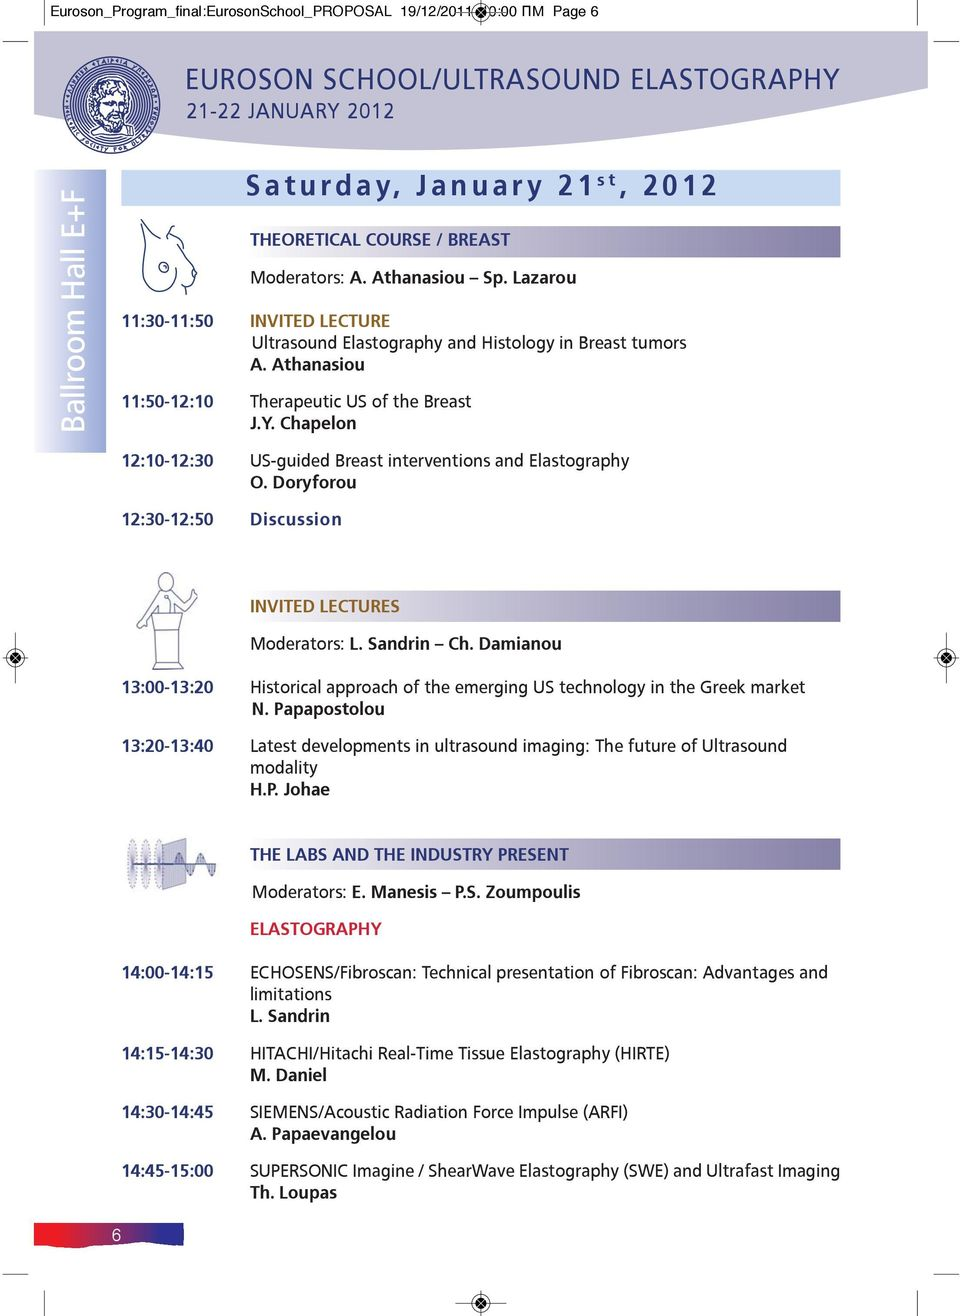 Chapelon 12:10-12:30 US-guided Breast interventions and Elastography O. Doryforou 12:30-12:50 Discussion INVITED LECTURES Moderators: L. Sandrin Ch.